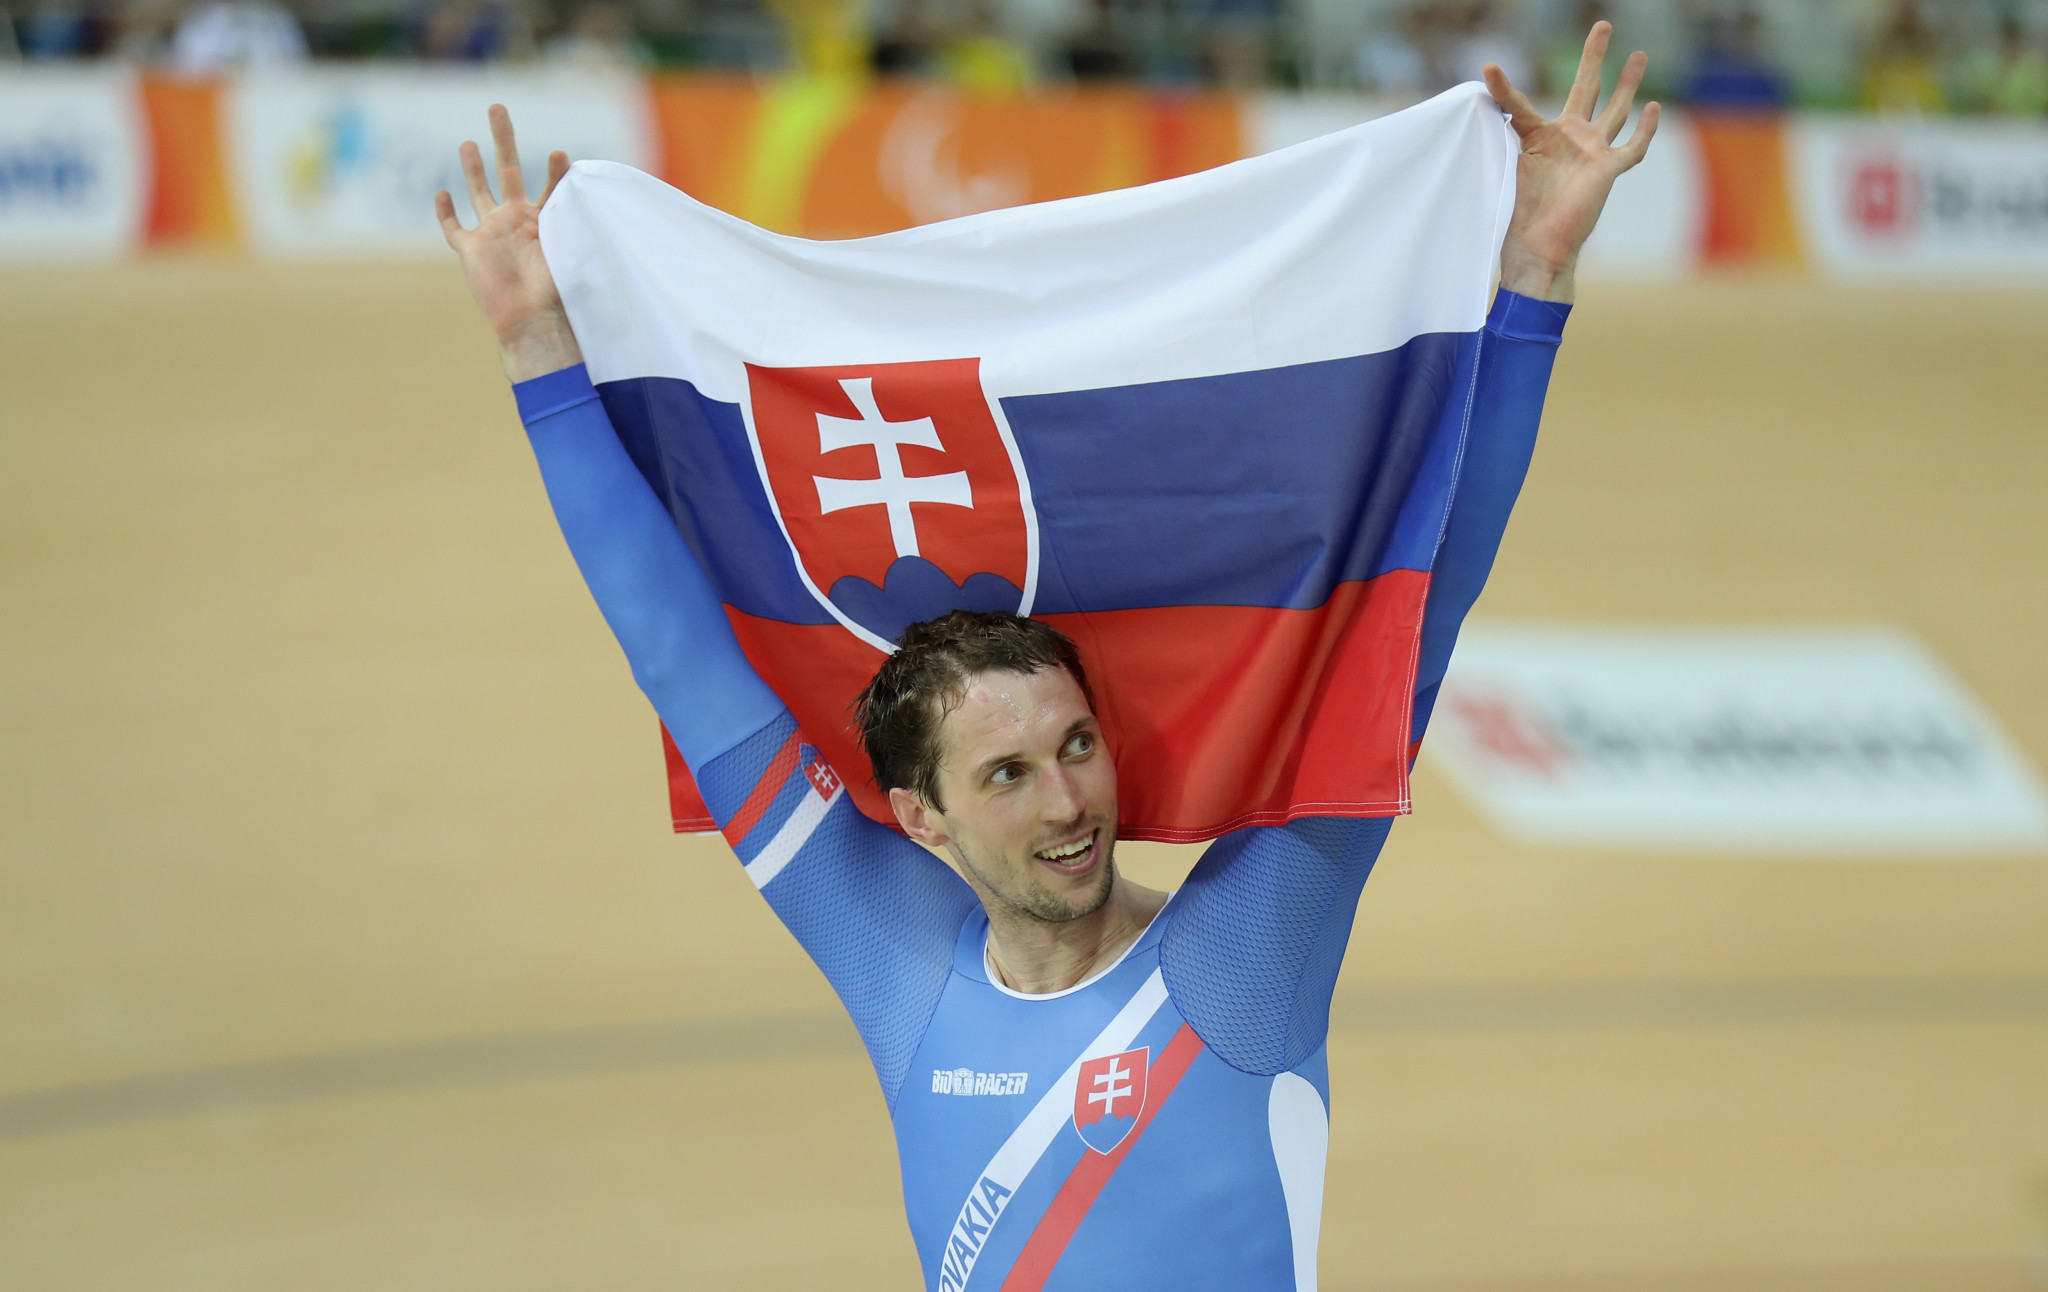 Slovakia's Jozef Metelka ended the event with three gold medals  ©Getty Images